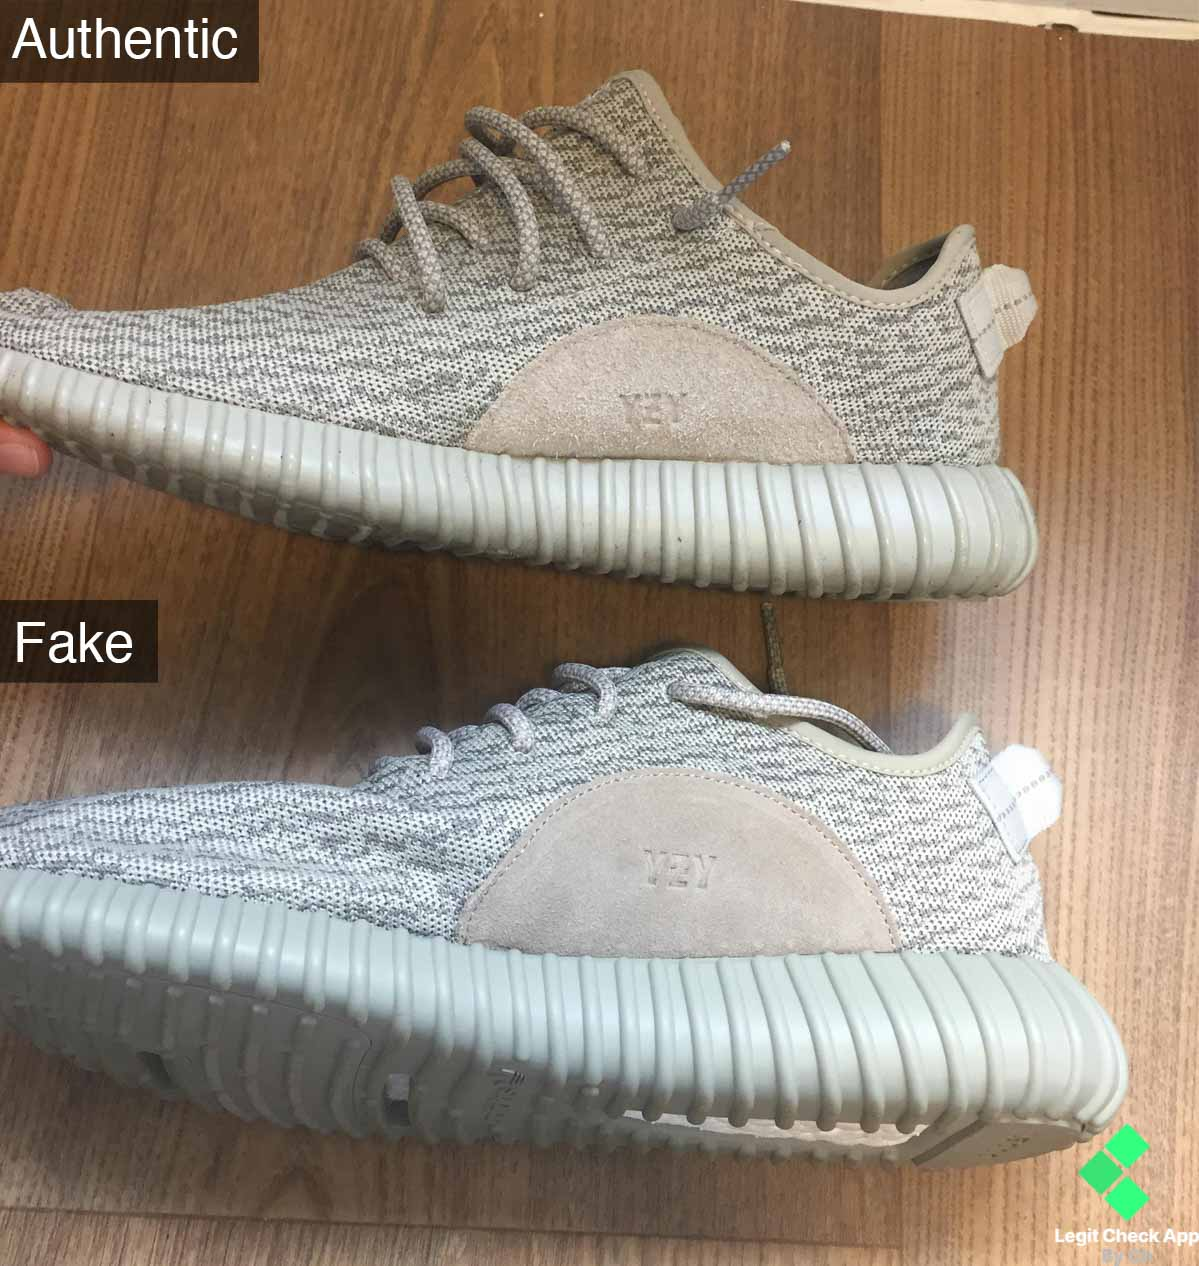 d22a99571dd Suede Patch Yeezy Boost 350 V1 Guide - Legit Check App By Ch